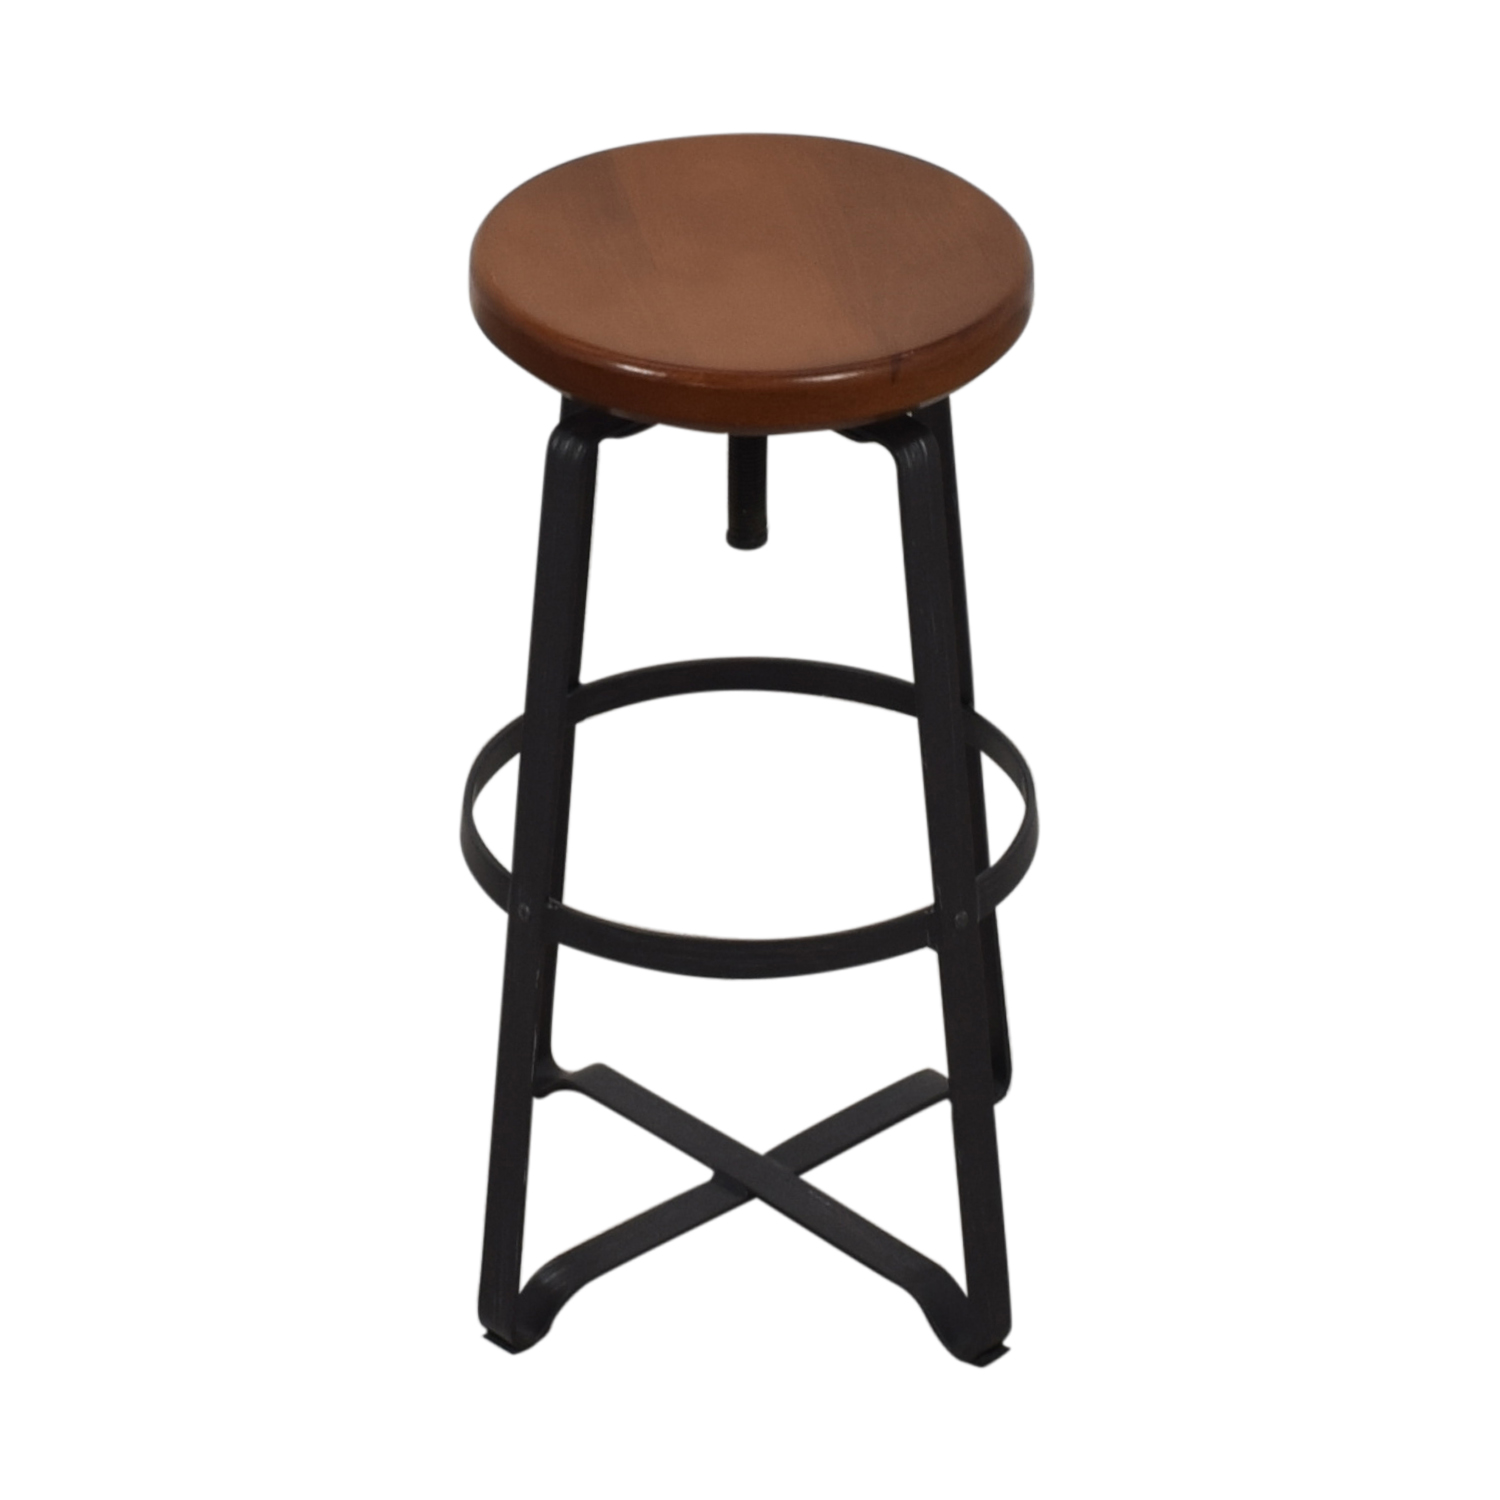 buy West Elm Adjustable Industrial Stool West Elm Stools